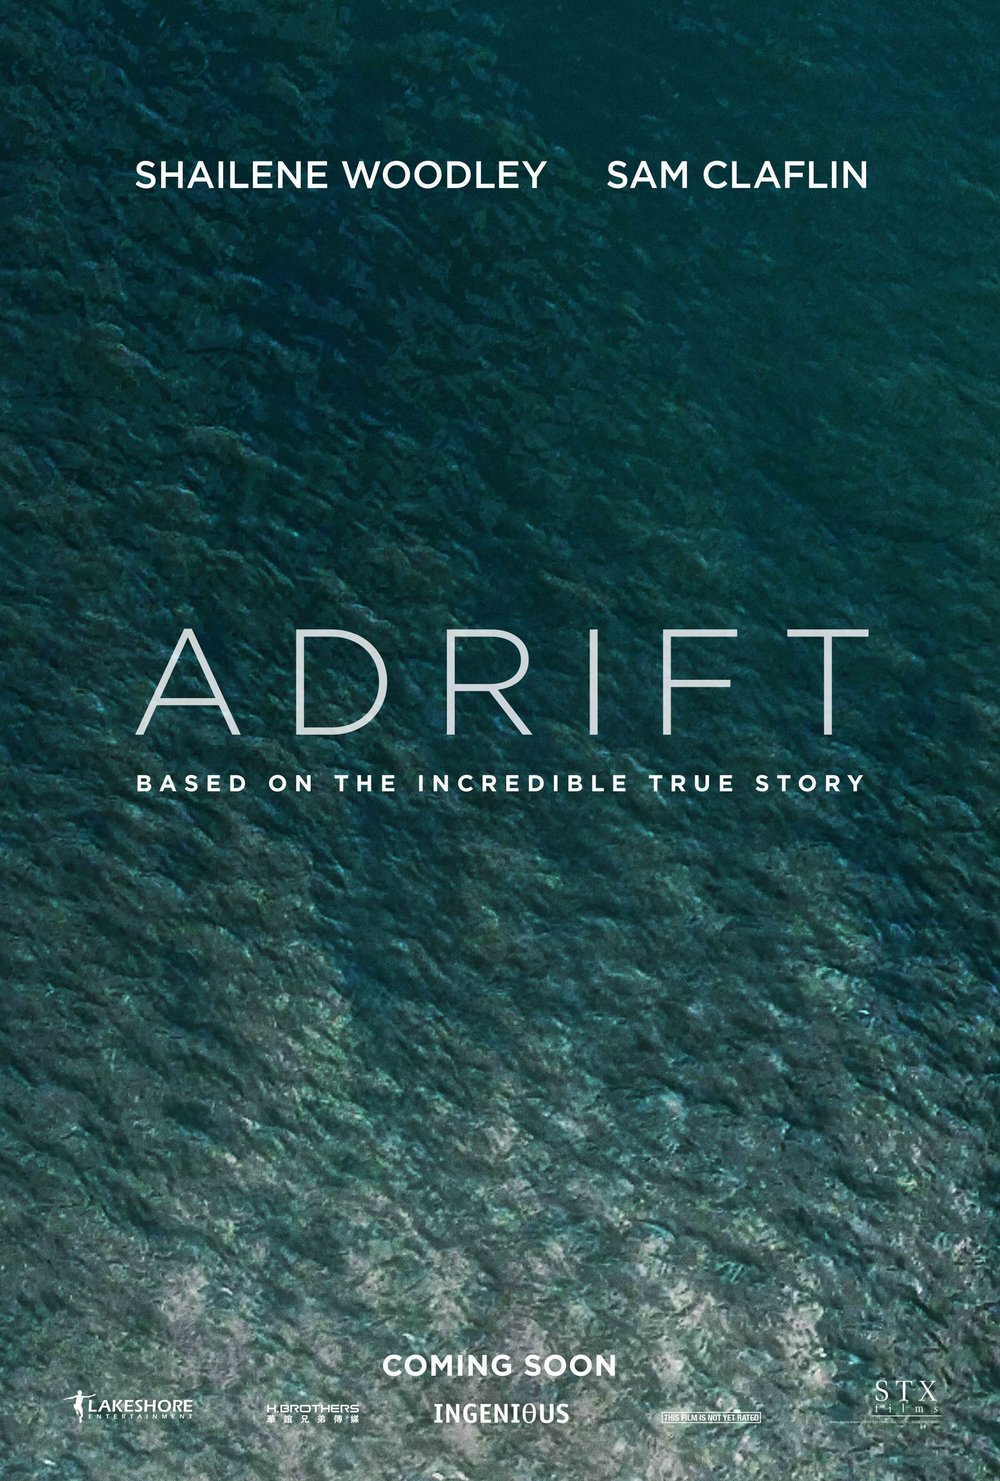 Adrift (2018) - Directed by: Baltasar KormakurStarring: Shailene WoodleyRated:PG-13Running Time: 1h 36mTMM Score:1 star out of 5STRENGTHS: NoneWEAKNESSES: Acting, Editing, Pacing, Predictability, Writing